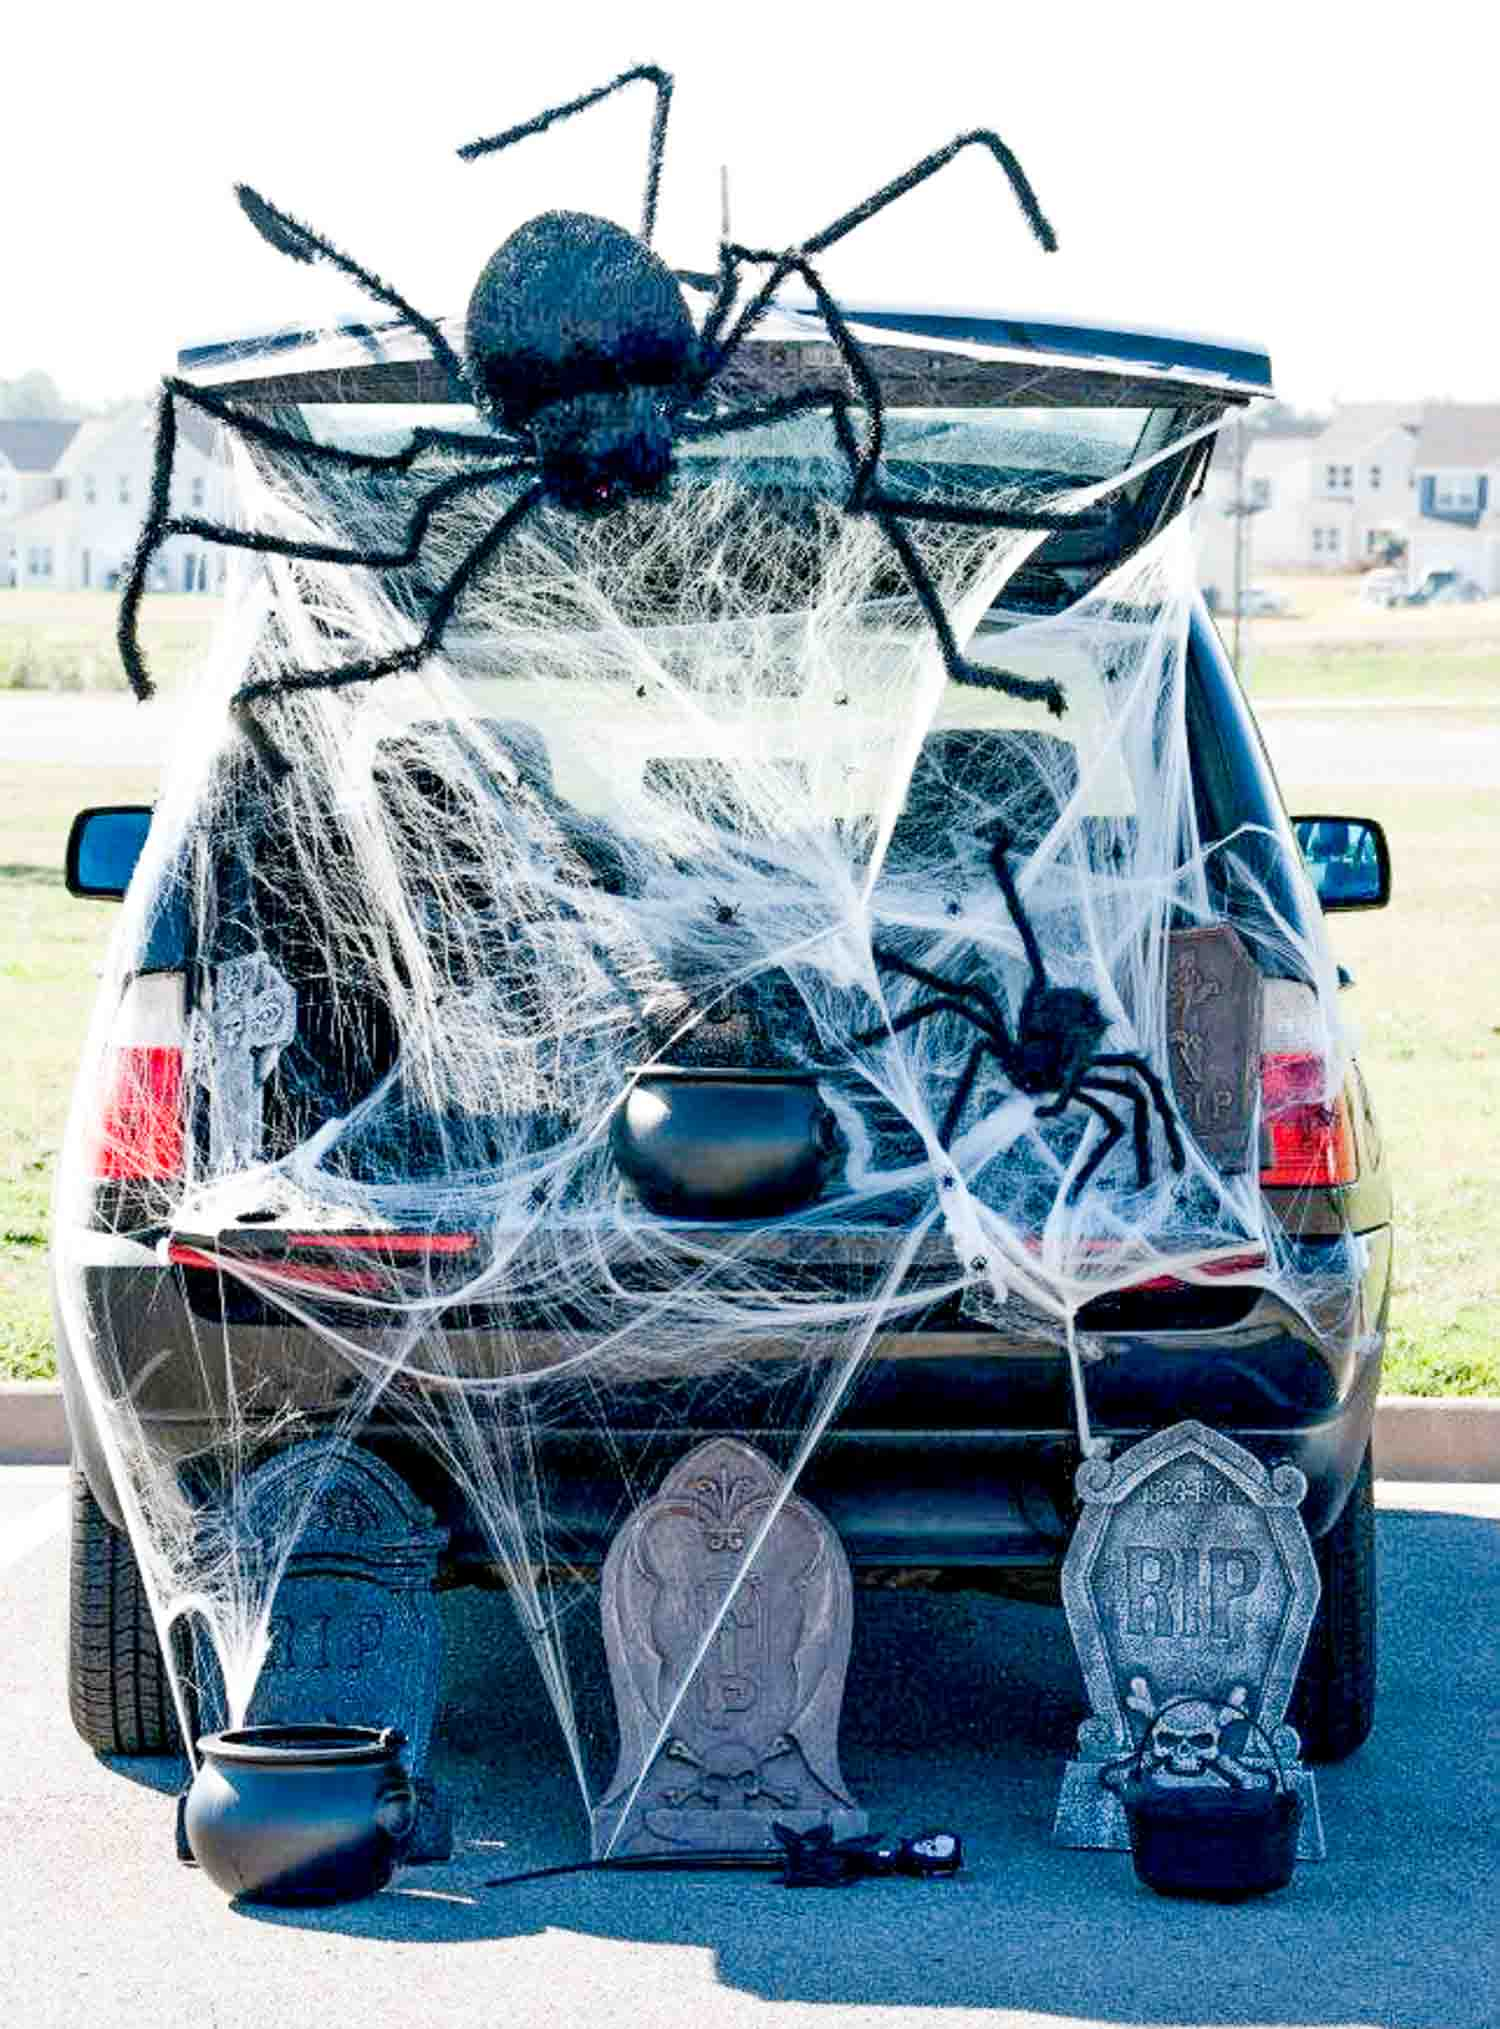 Two huge spiders in a spider web in an open trunk with a black cauldron and three gravestones on the ground - easy trunk or treat idea for SUV's!